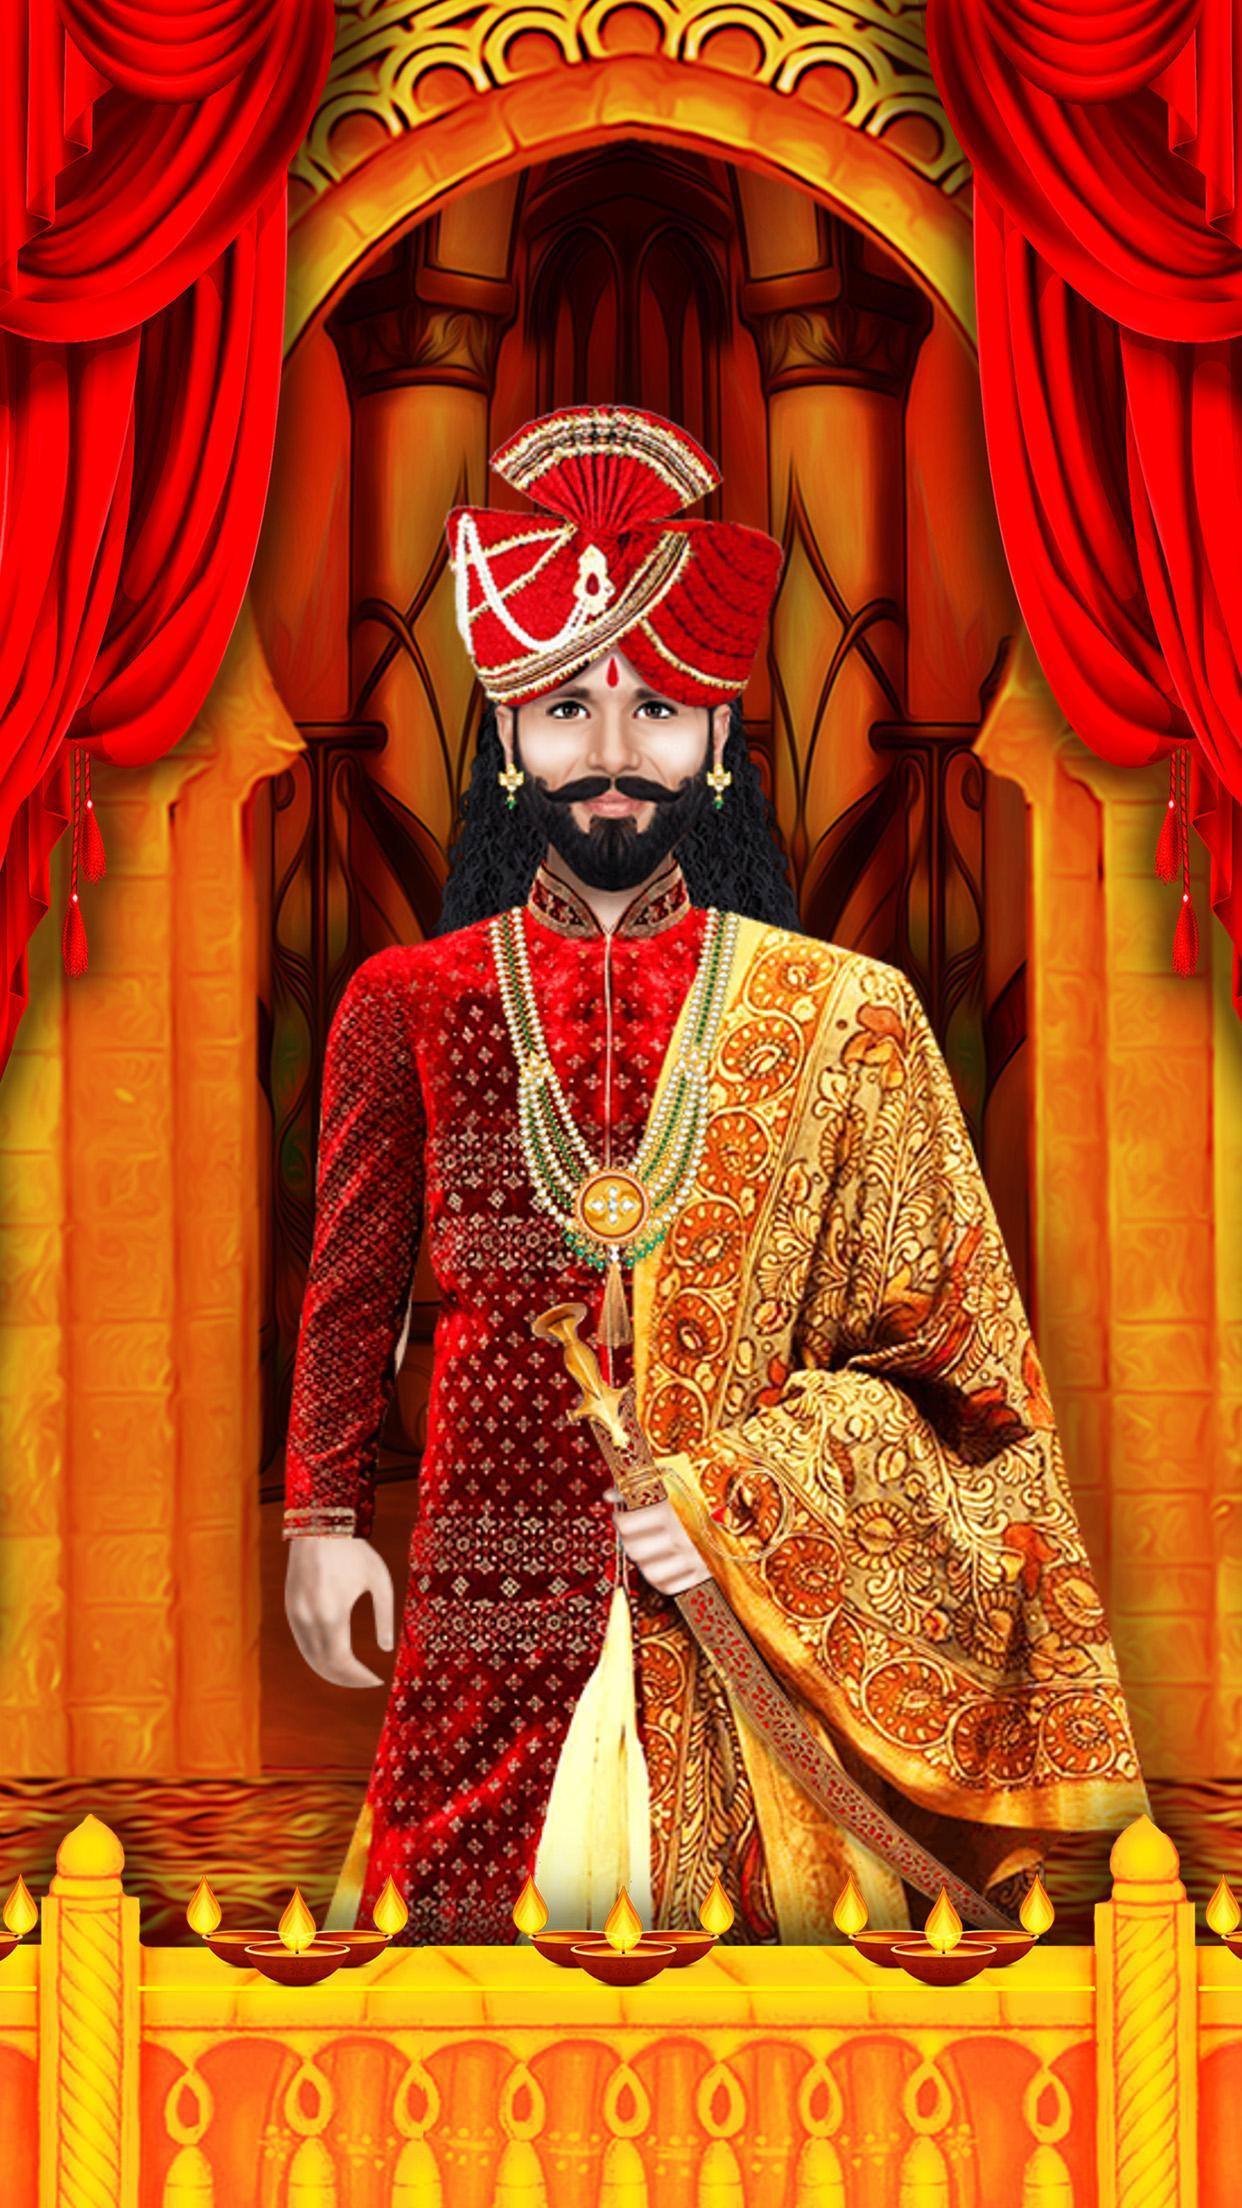 Rani Padmavati 2 : Royal Queen Wedding 1.9 Screenshot 5